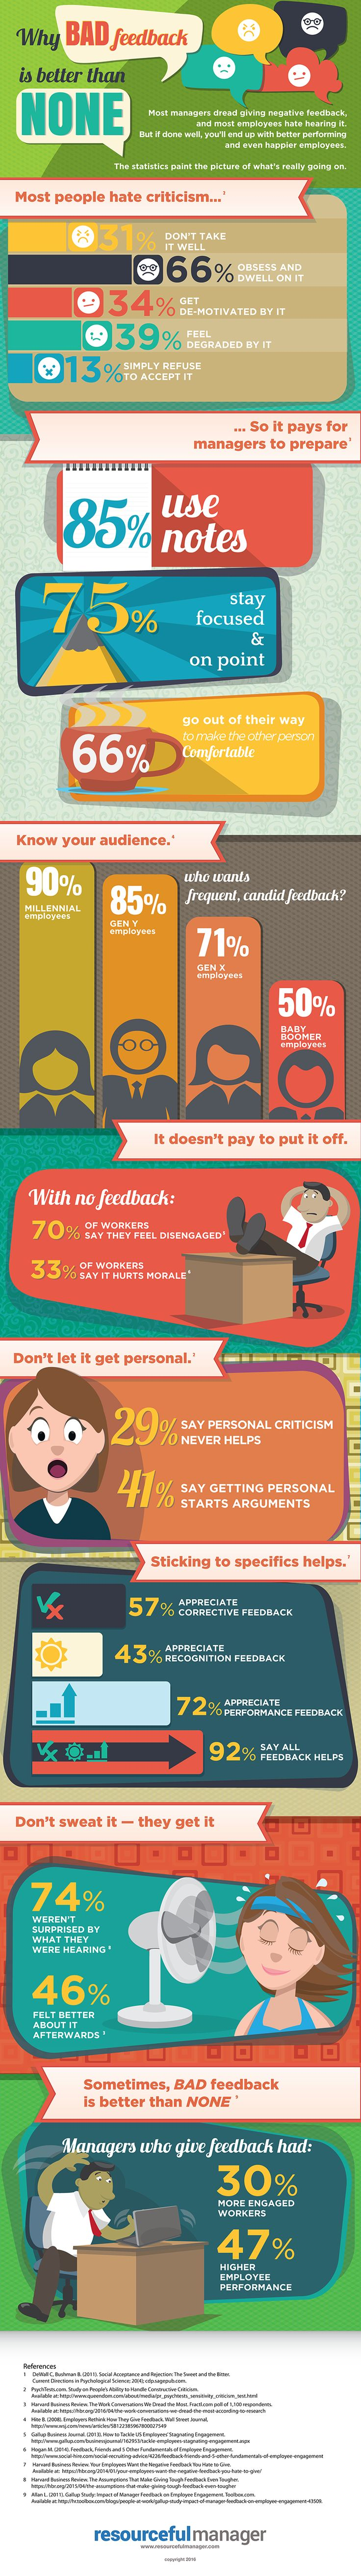 Why Bad Feedback Is Better Than None: http://blog.hubspot.com/marketing/negative-feedback-management-tips